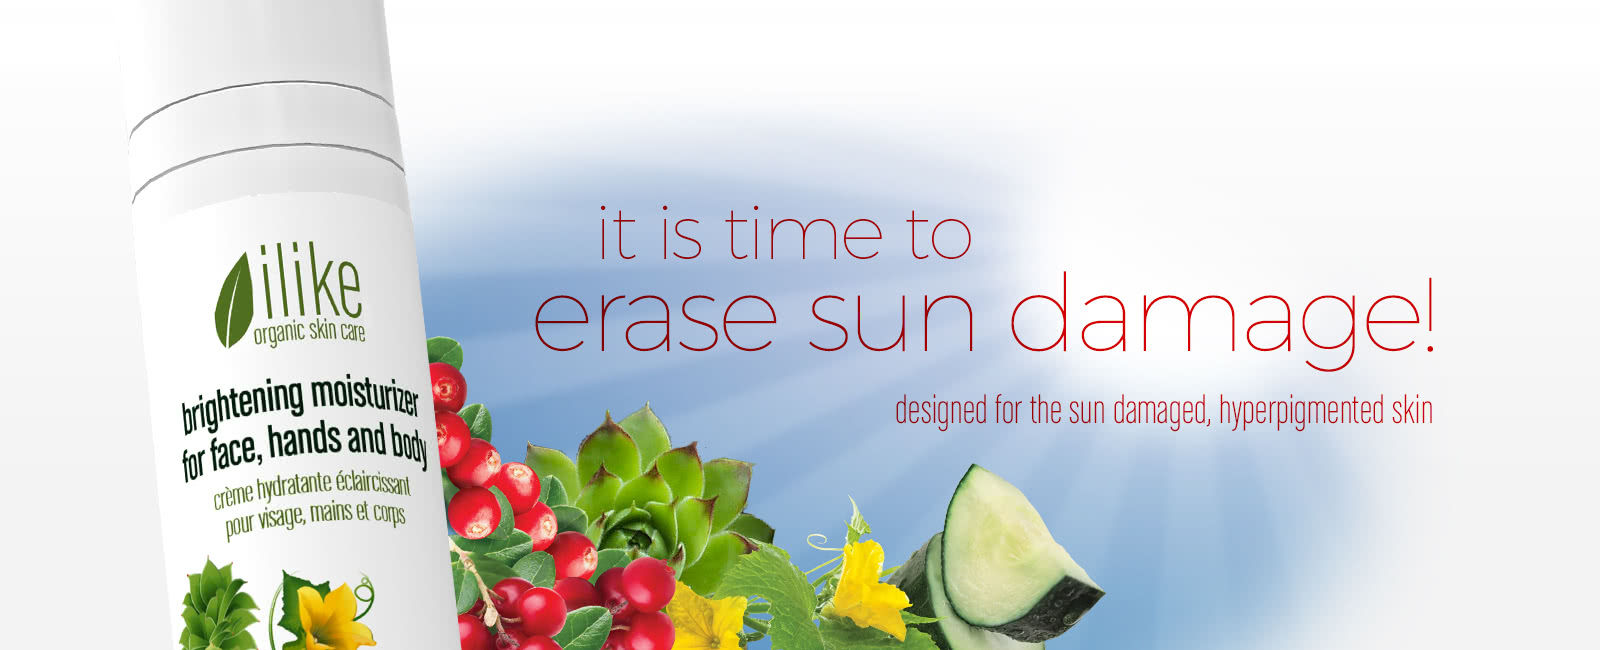 It Is Time To Erase Sun Damage! Game Changer In Treatment Of Hyperpigmentation